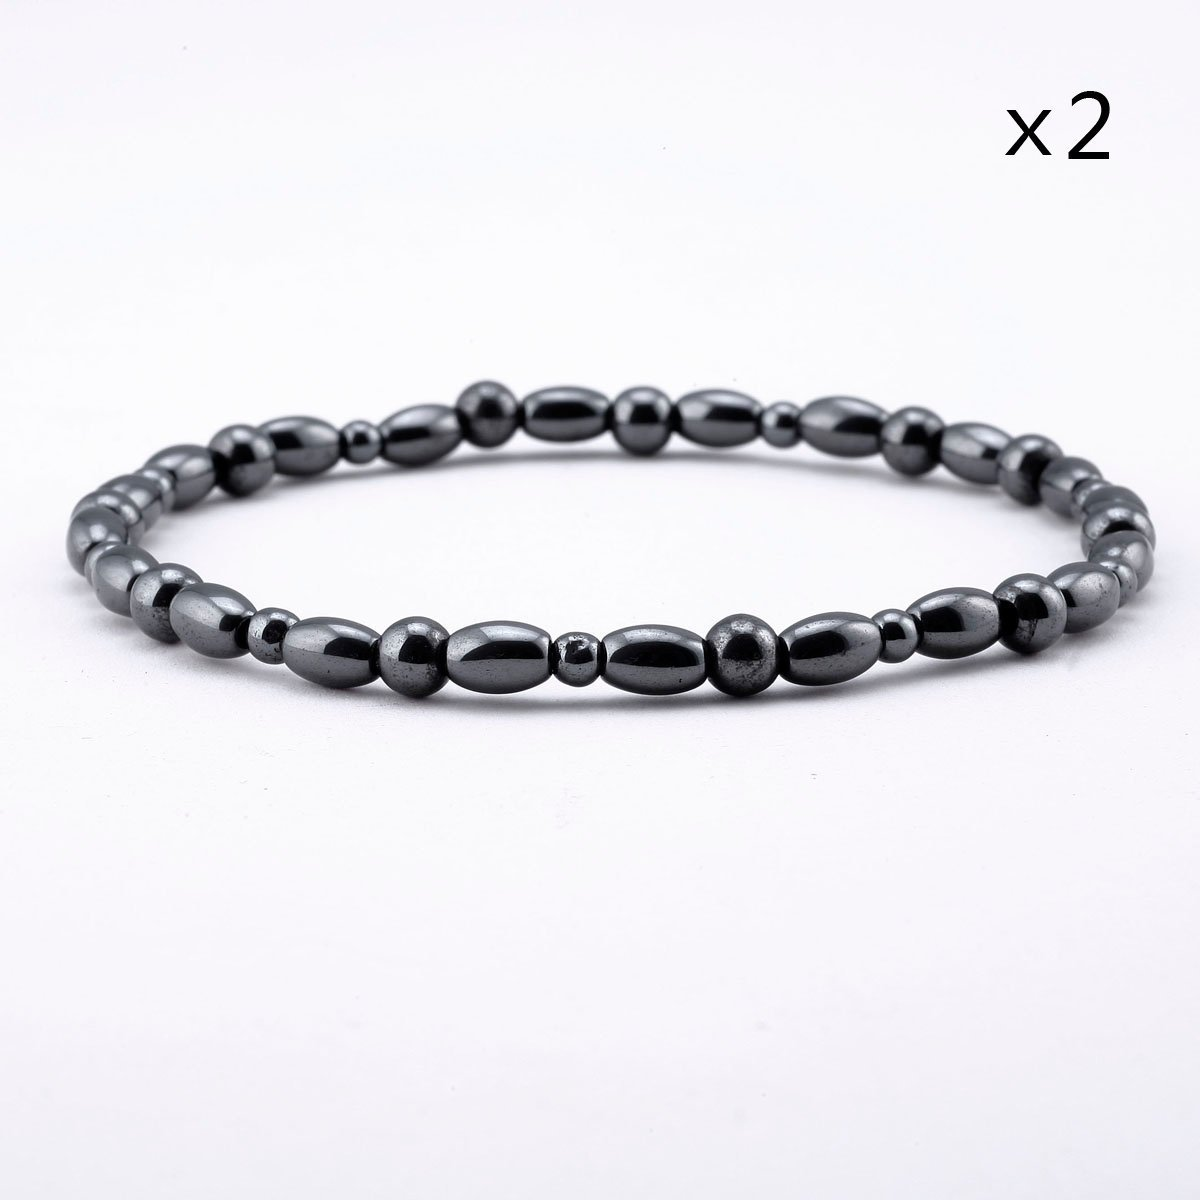 grayish gout jasper single picasso gray category womens lodestone product jewelry magnetic sa mens magnetite brazilian men s unisex anklet